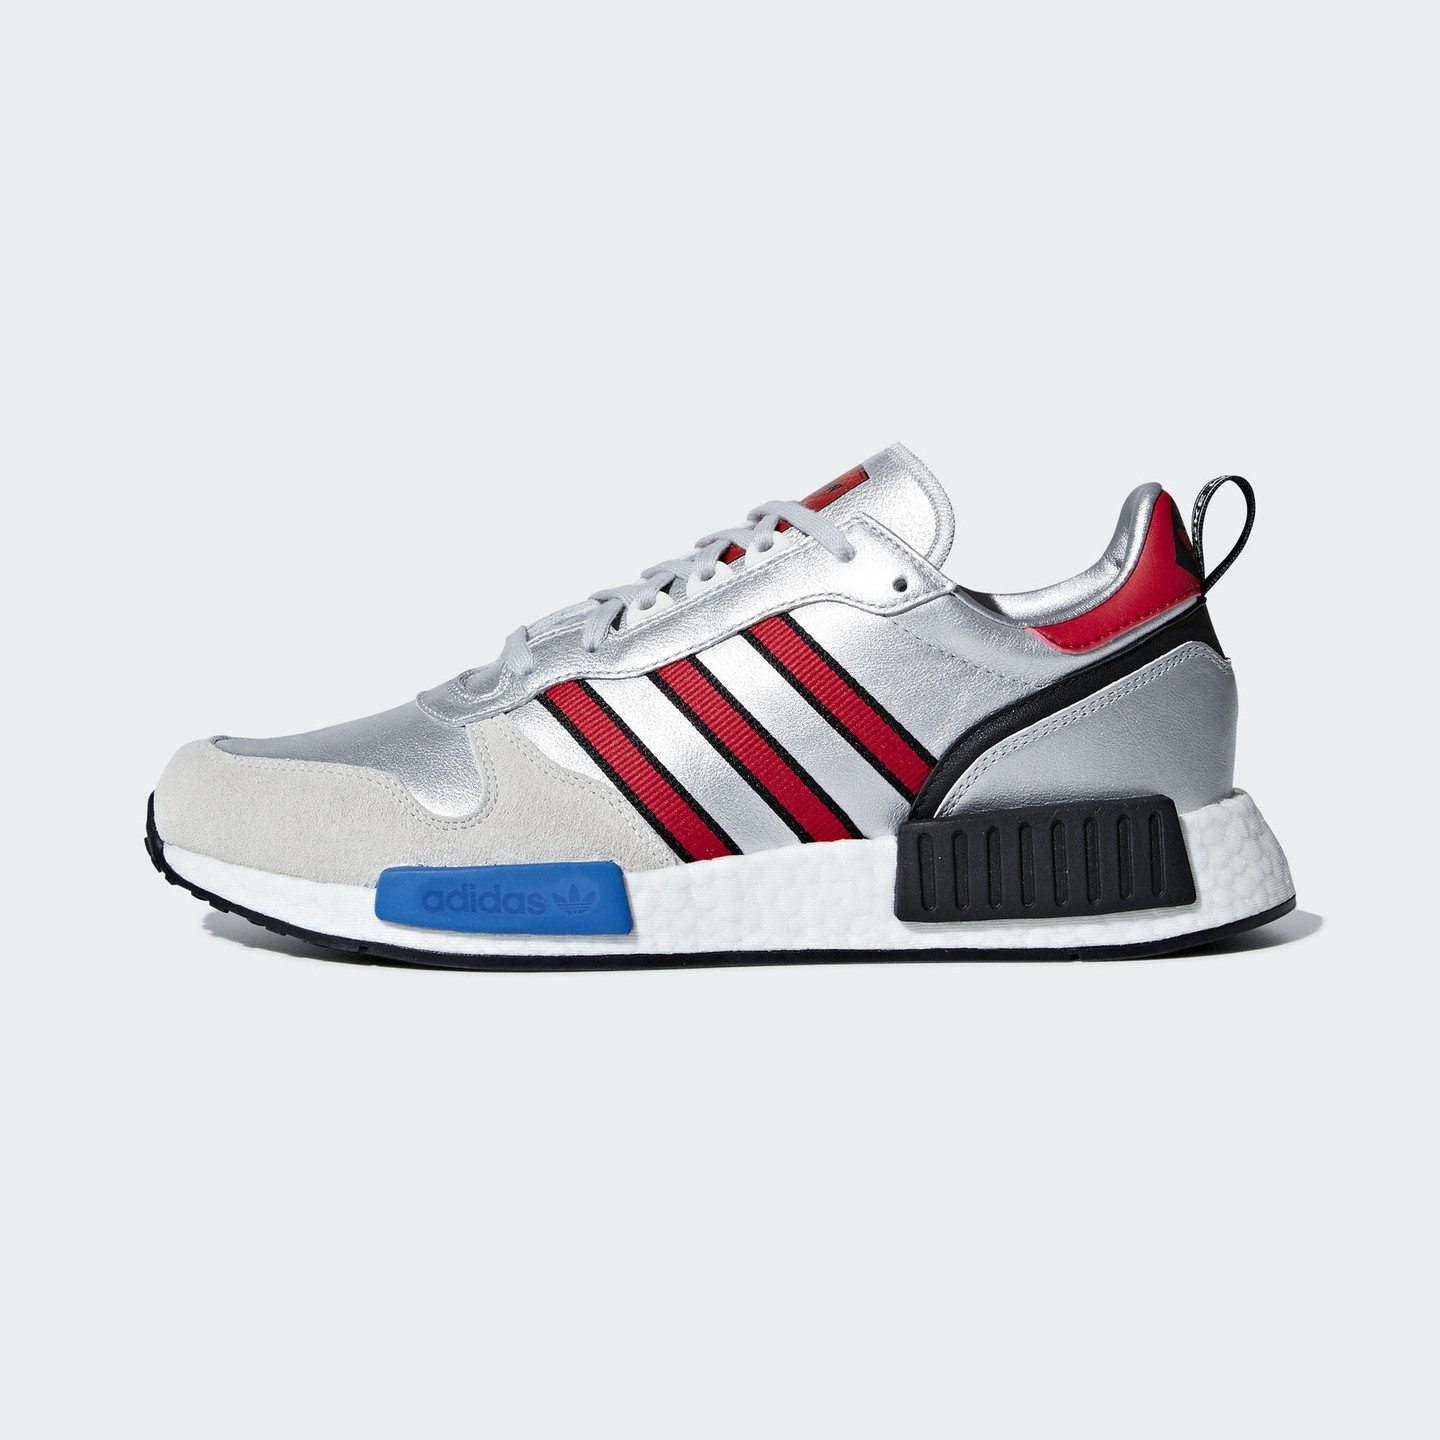 Adidas Rising Star x R1 'Never Made' Silver Metallic / Collegiate Red / Ftwr White G26777